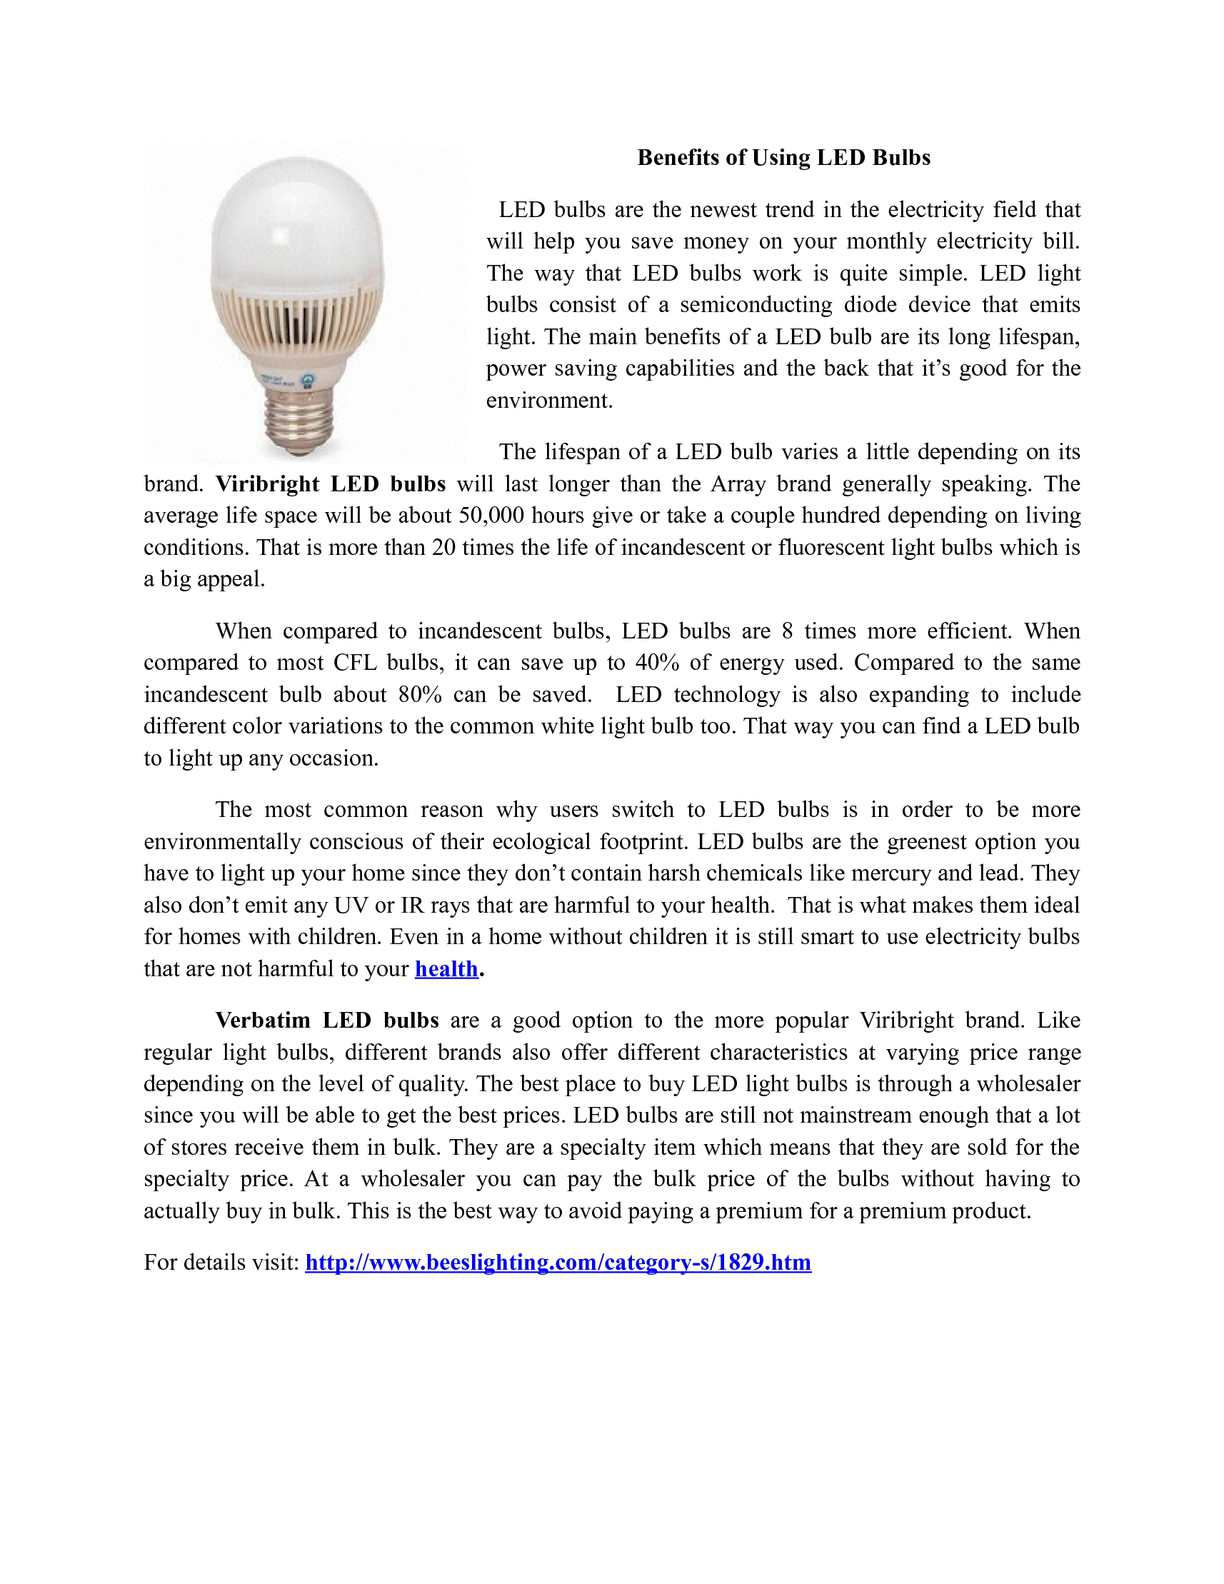 Calaméo - Led's has long lifetime than regular bulbs